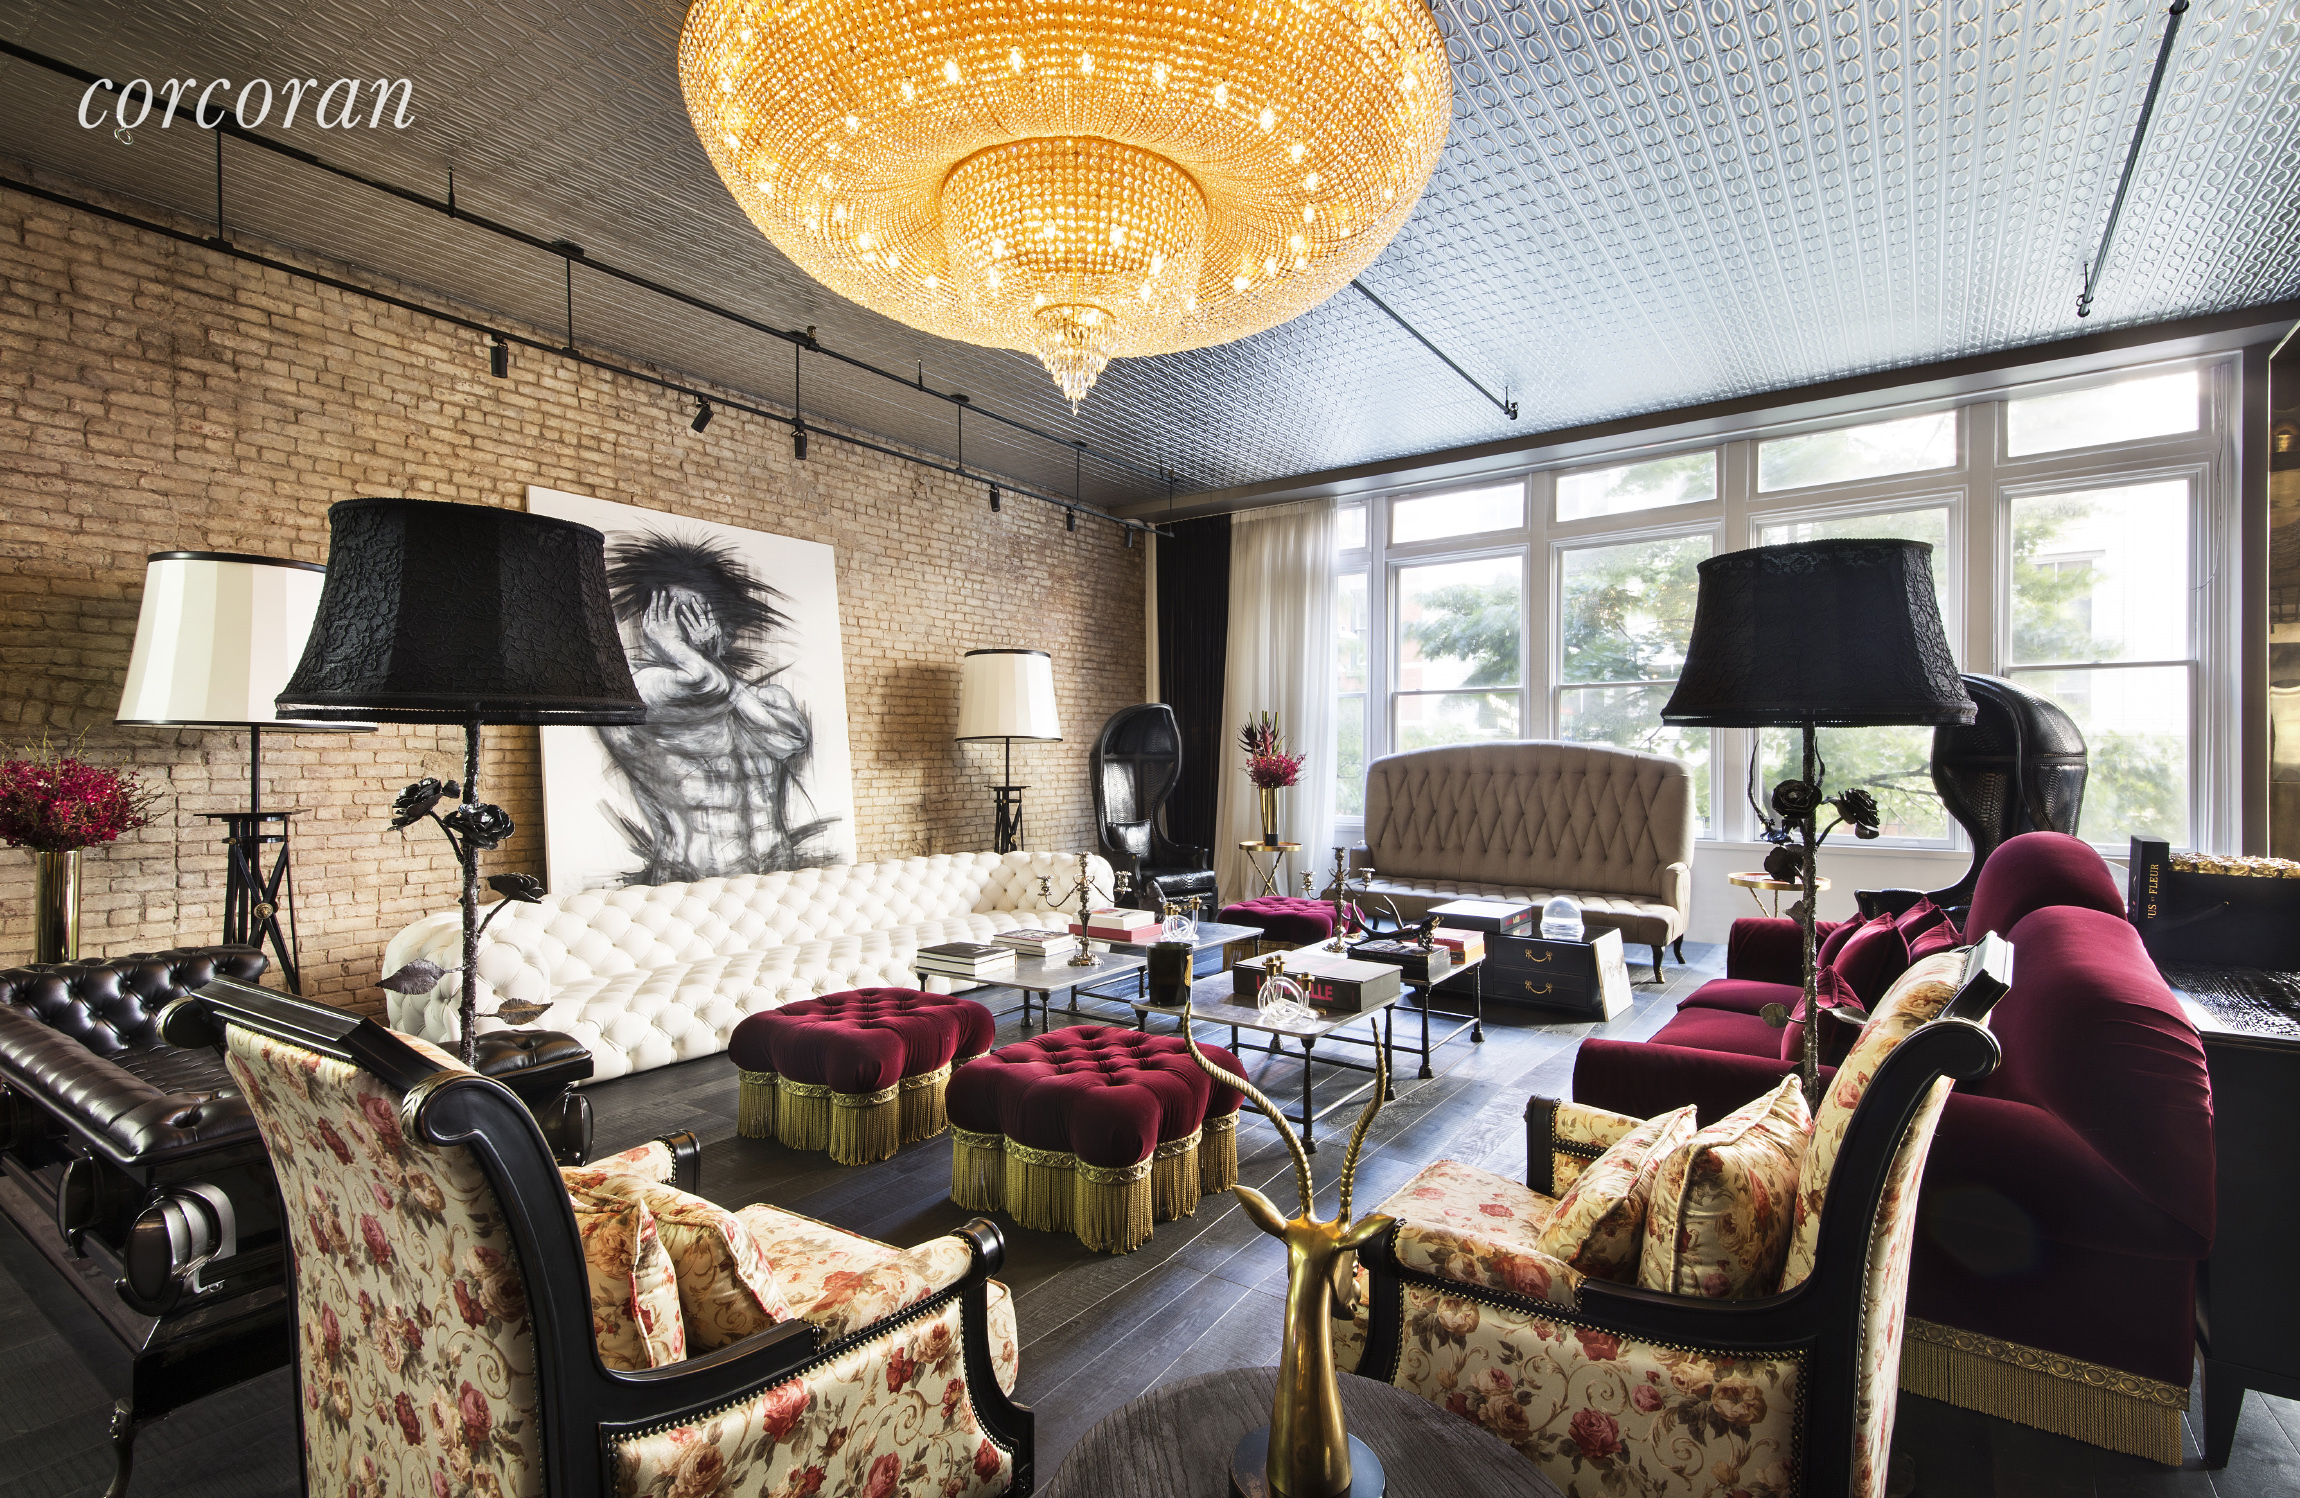 Sojo Spa Donation Request 12m Soho Loft Was Inspired By An Opulent Parisian Hotel And An